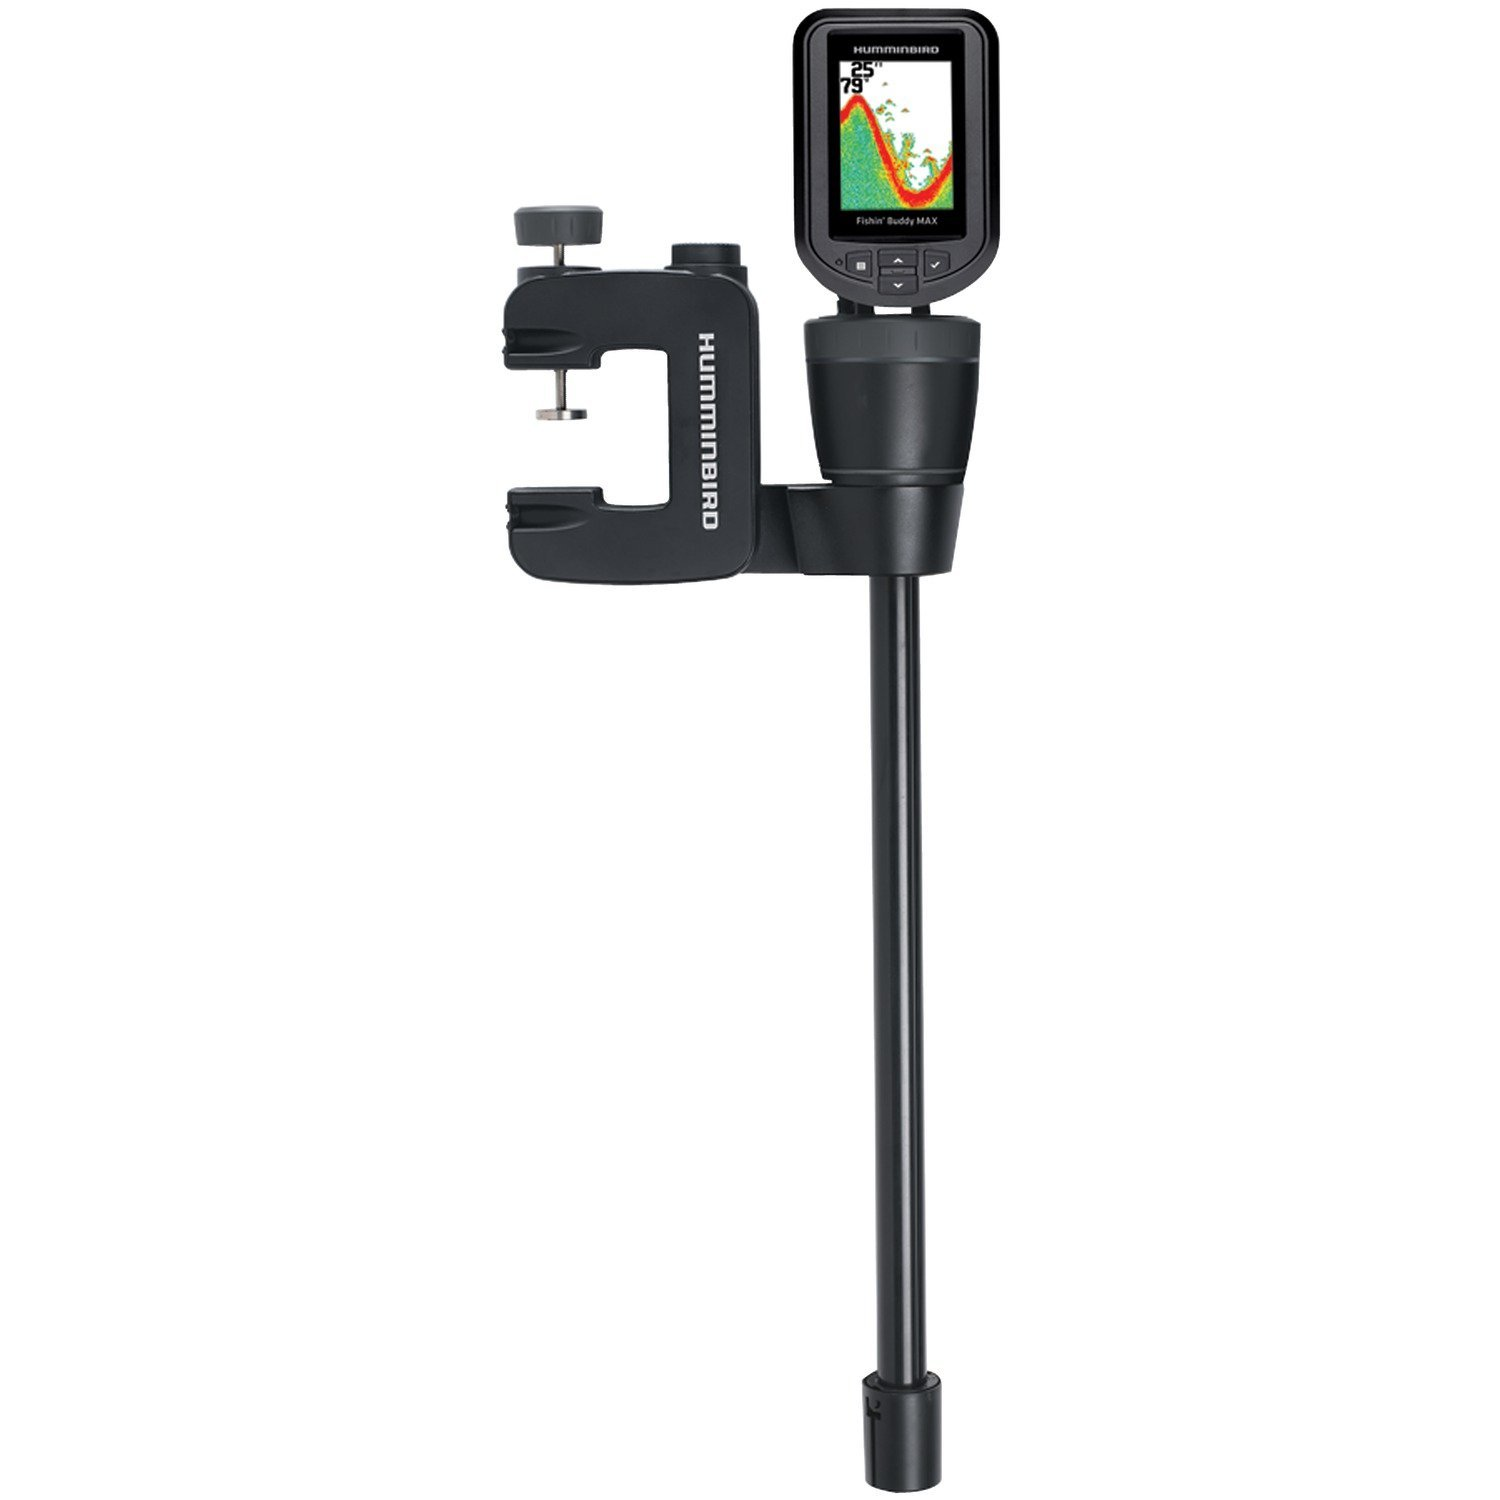 humminbird fishin buddy max review